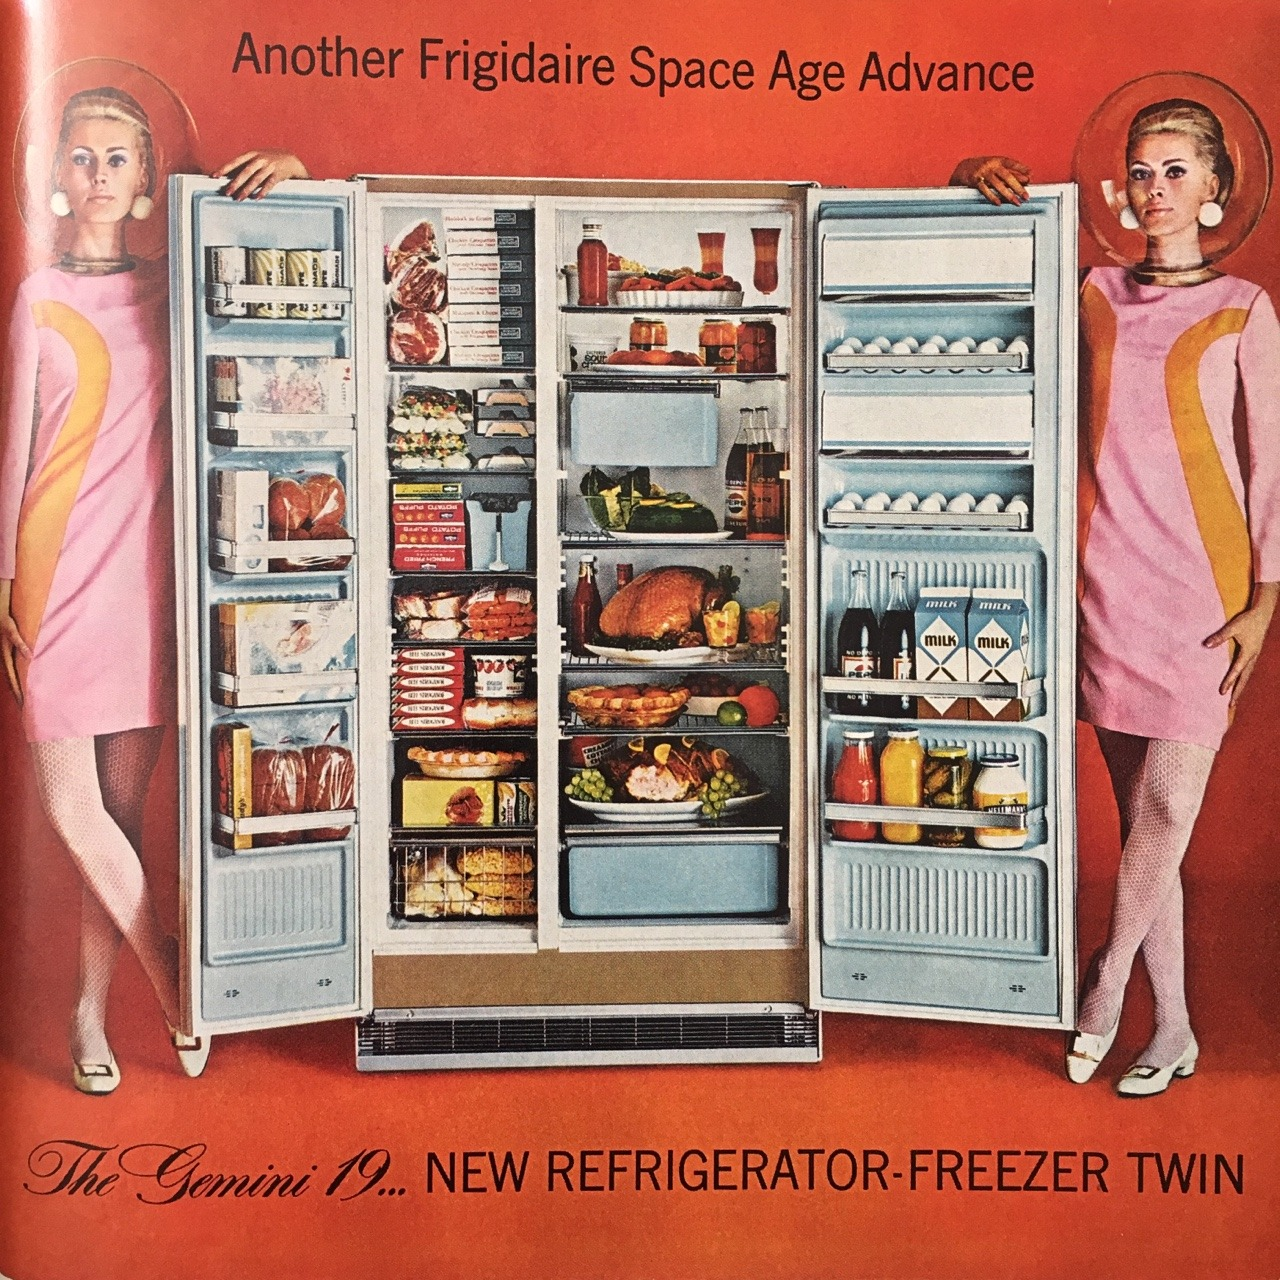 Another Frigidaire Space Age Advance.     Better Homes and Gardens. June 1966.